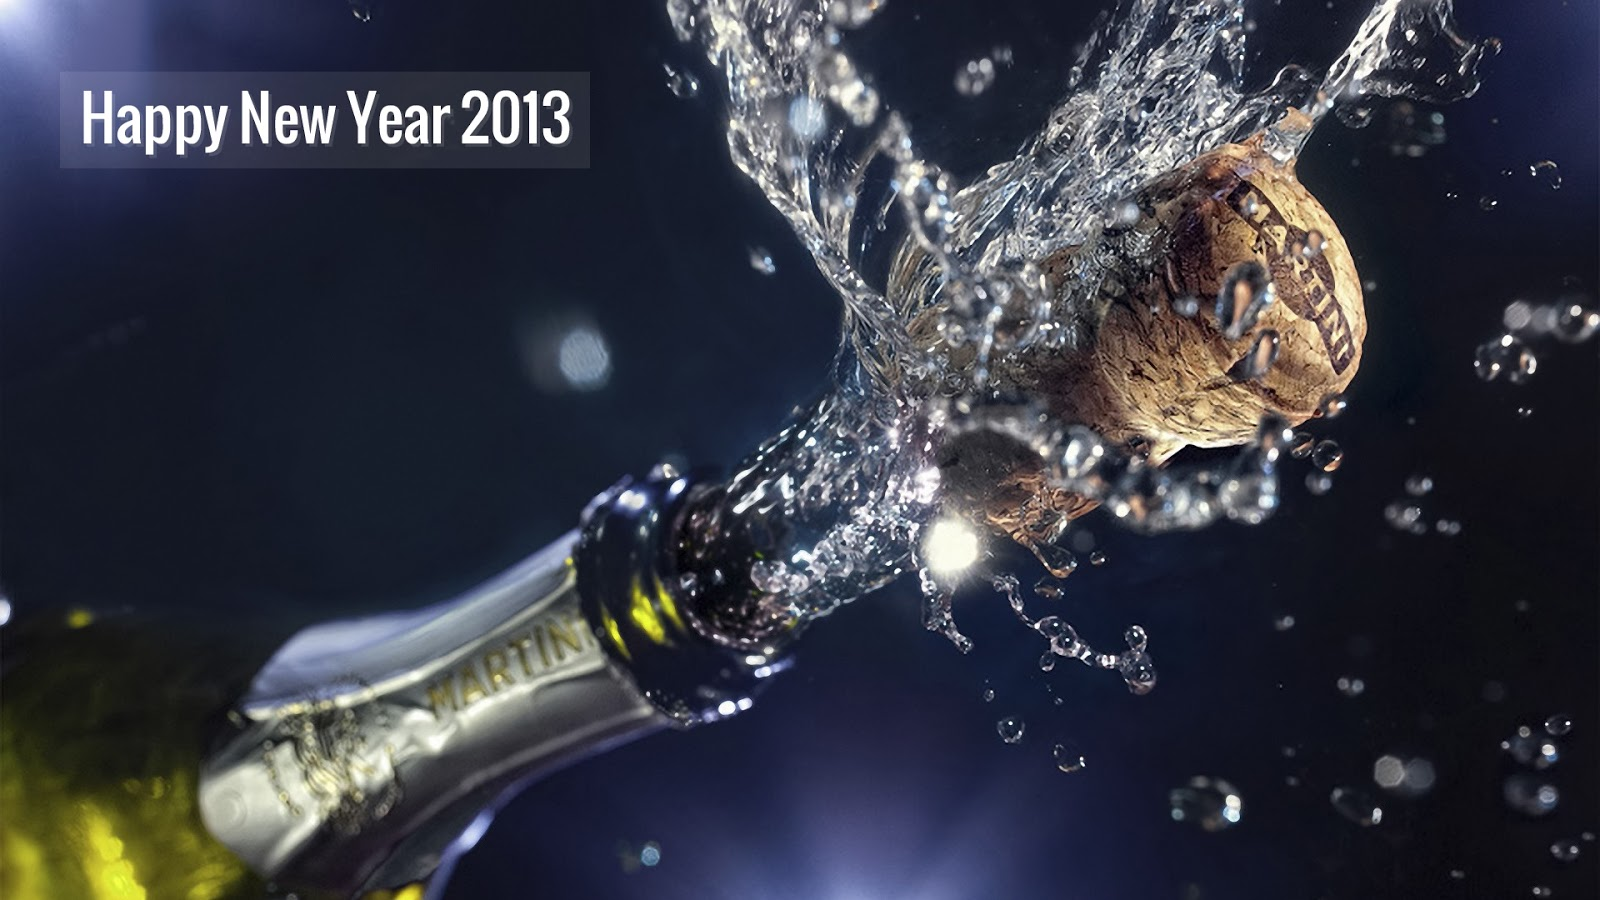 Happy New Year Splash